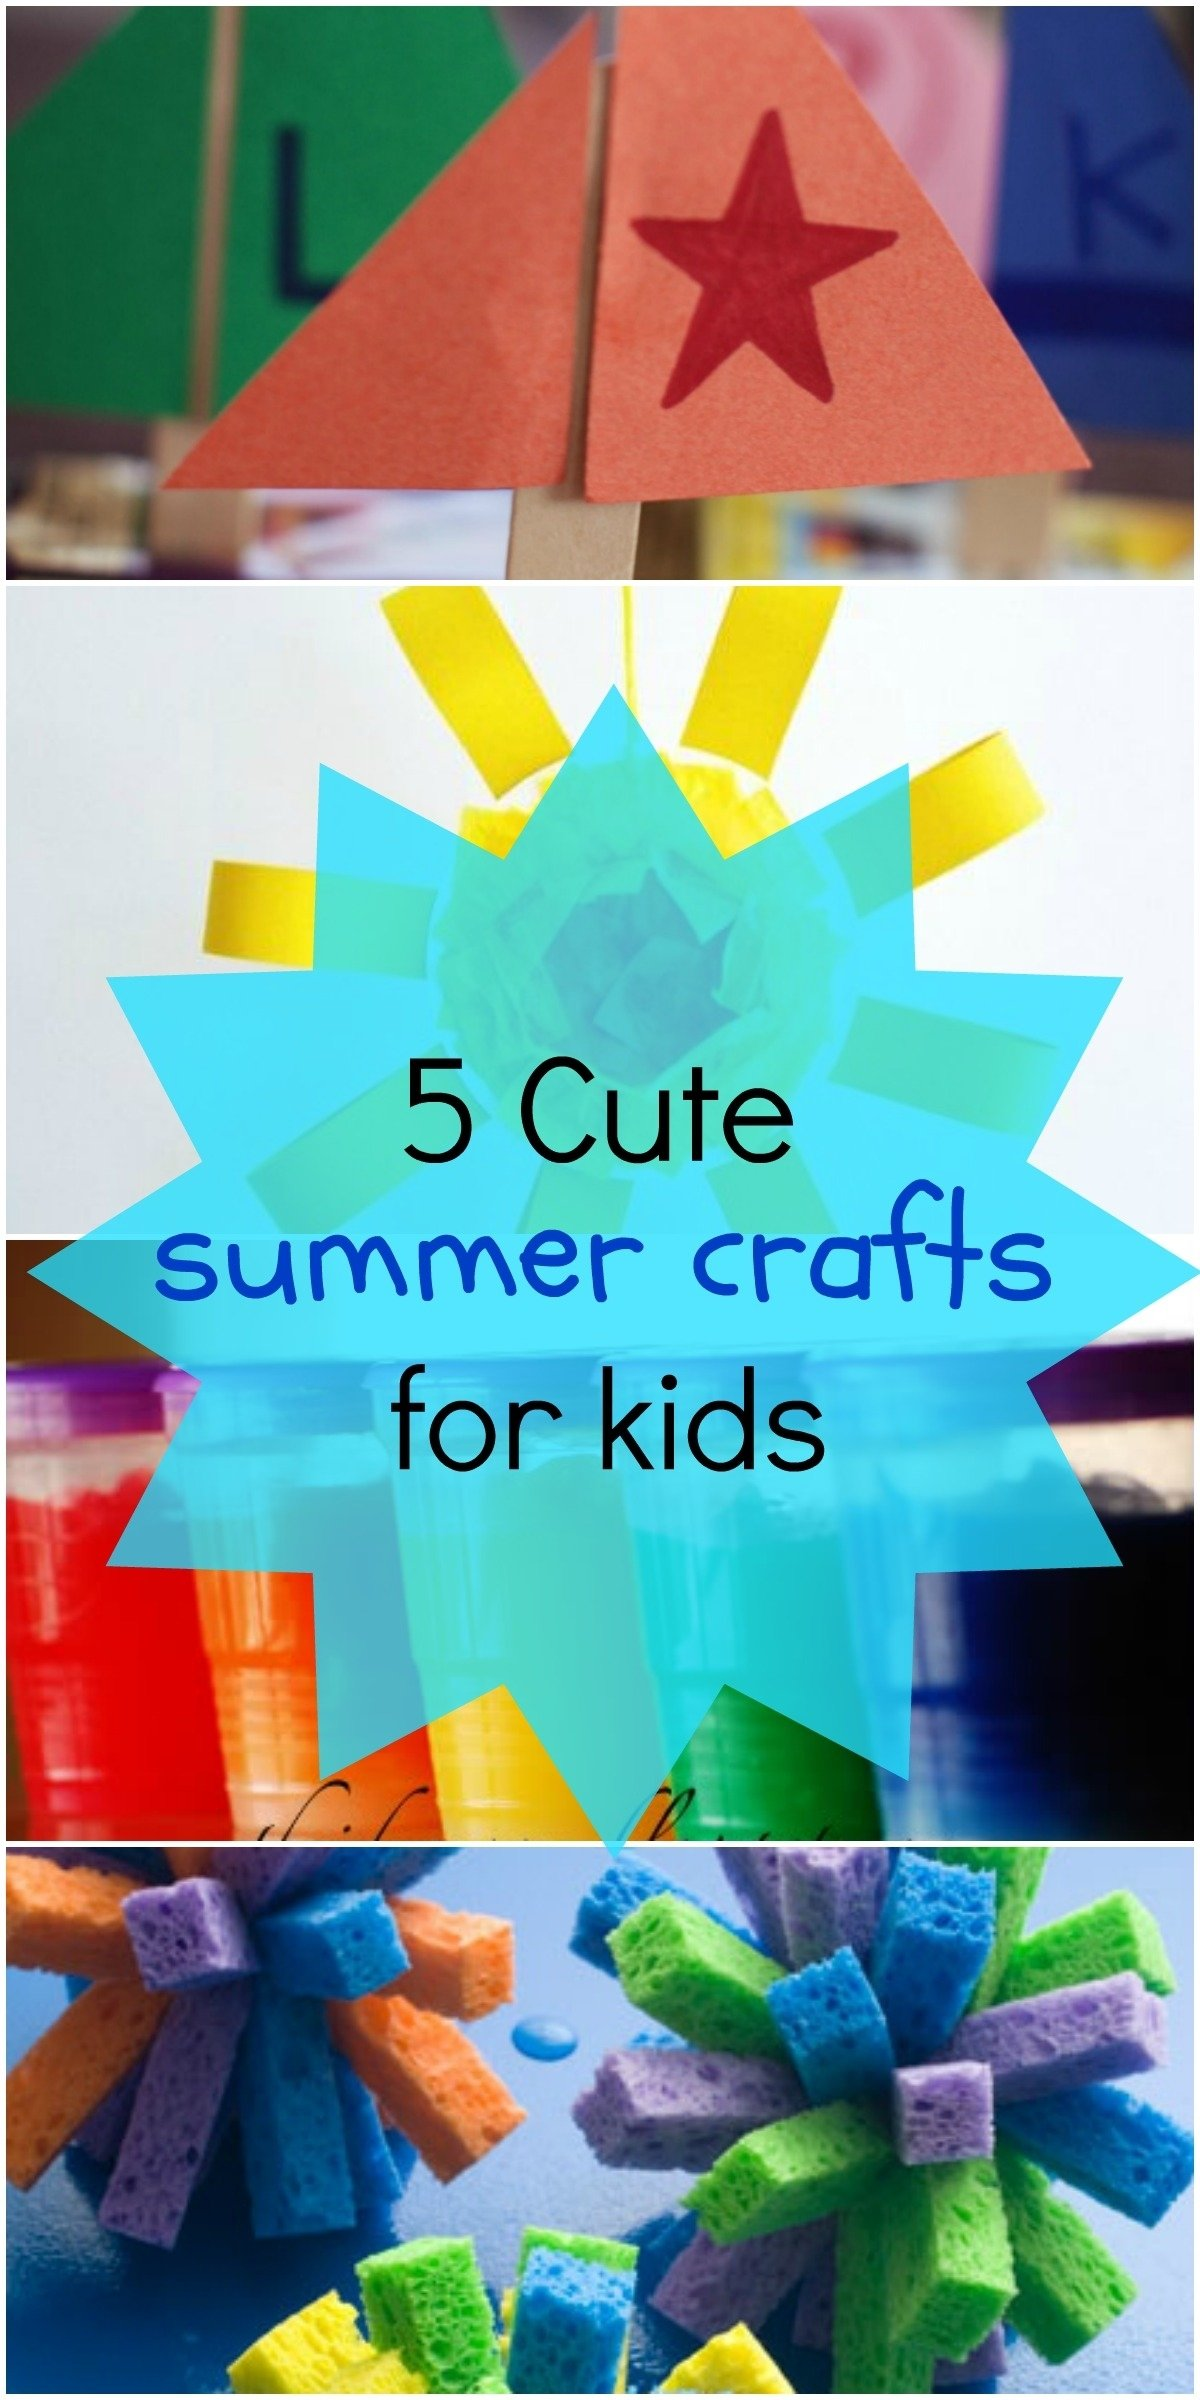 10 Elegant Summer Arts And Crafts Ideas 5 fun summer crafts for kids love these art project ideas 2021